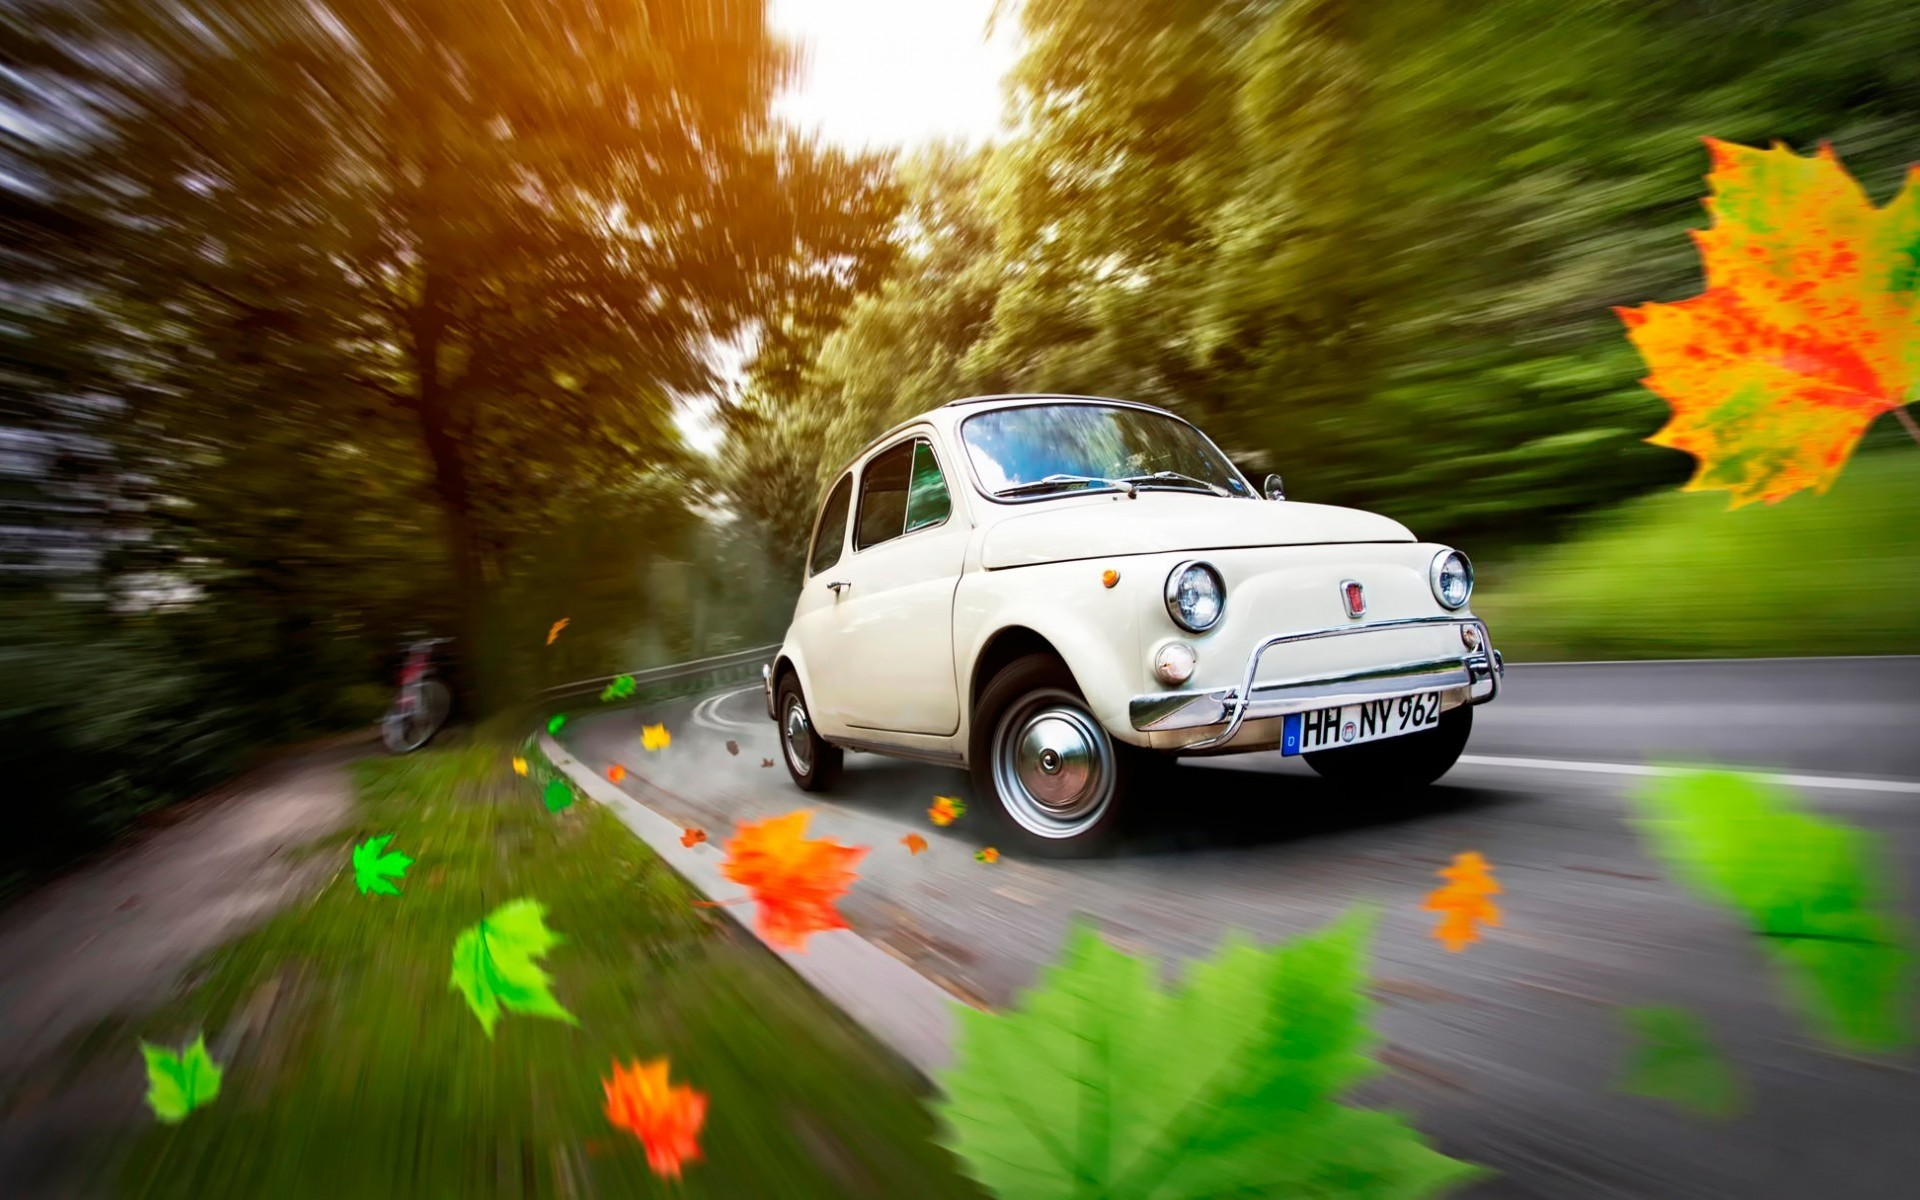 fiat car road vehicle transportation system asphalt drive hurry blur fast traffic highway action outdoors street fiat 500 old fiat classic cars vintage cars cool